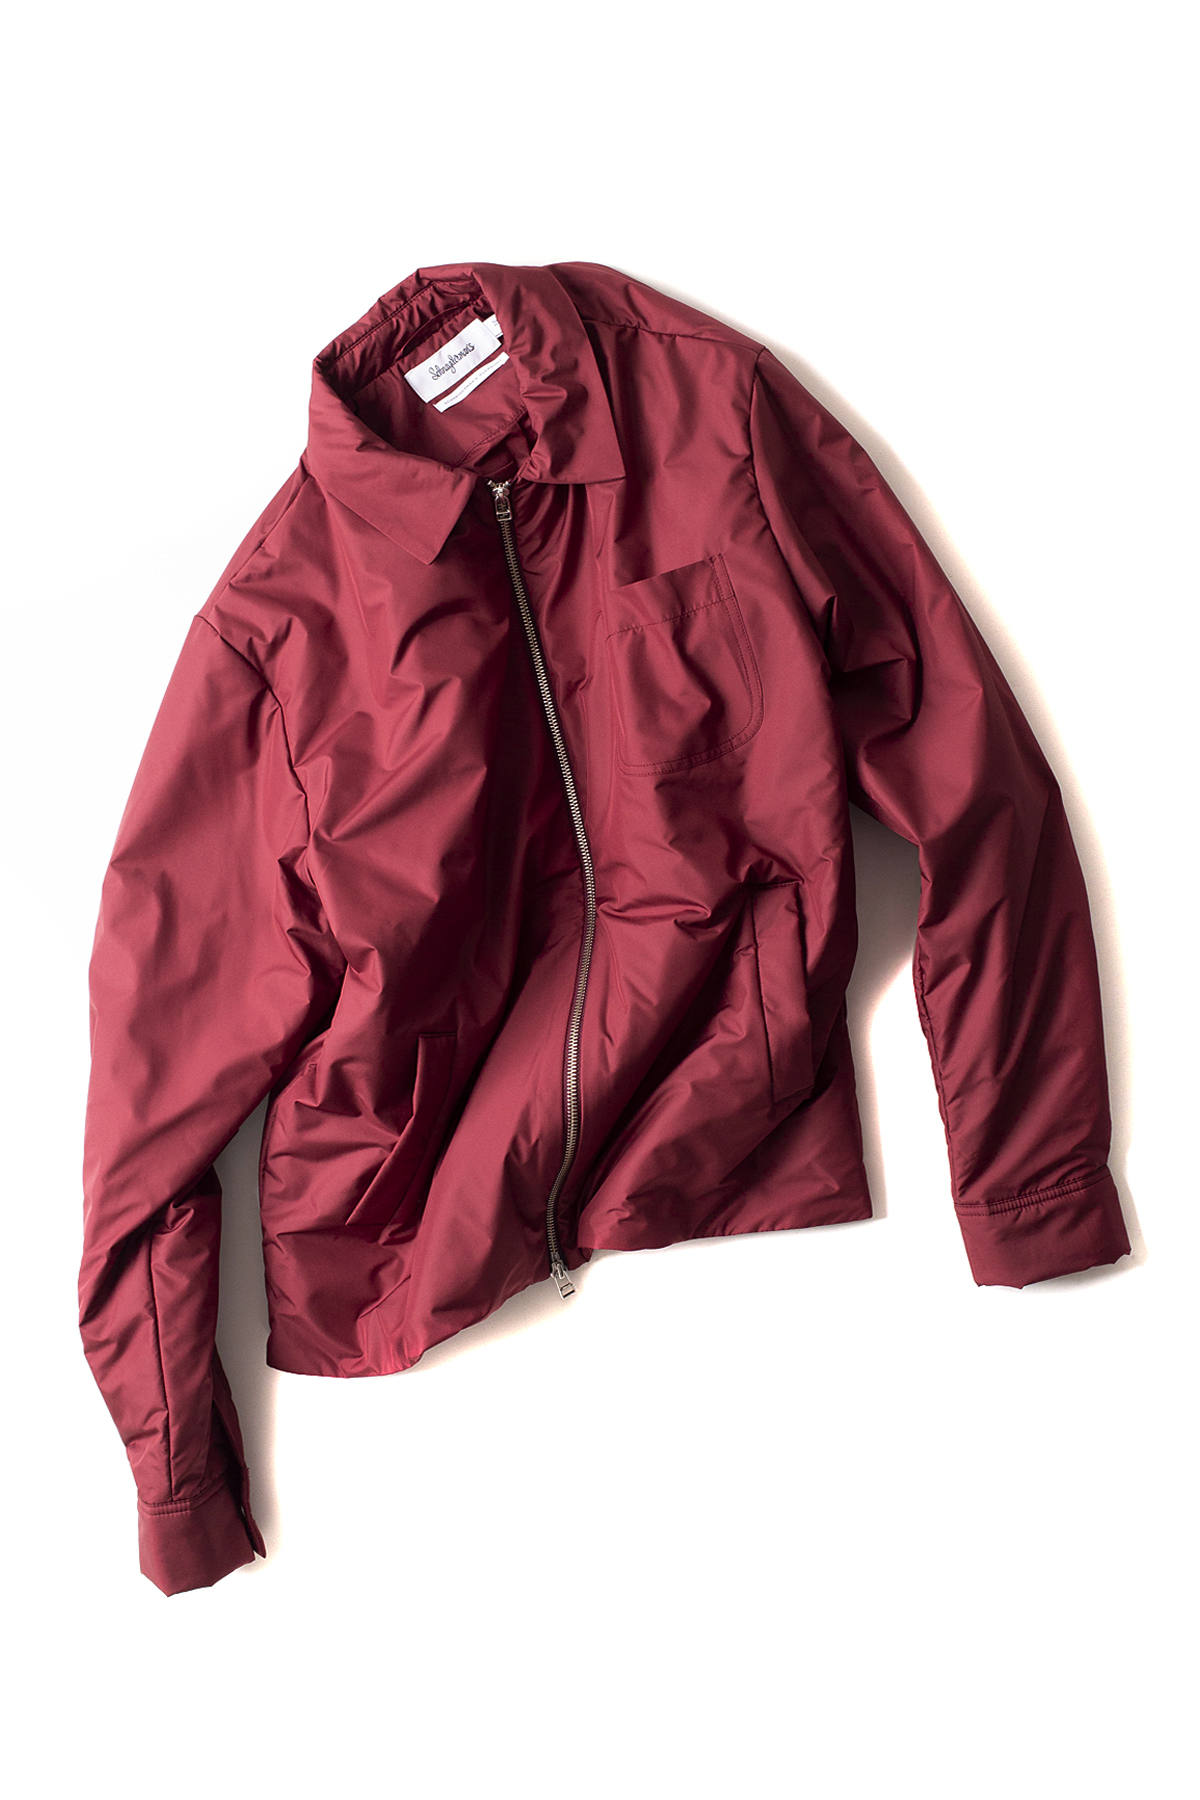 Schnayderman's : Overshirt Bomber One (Burgundy)